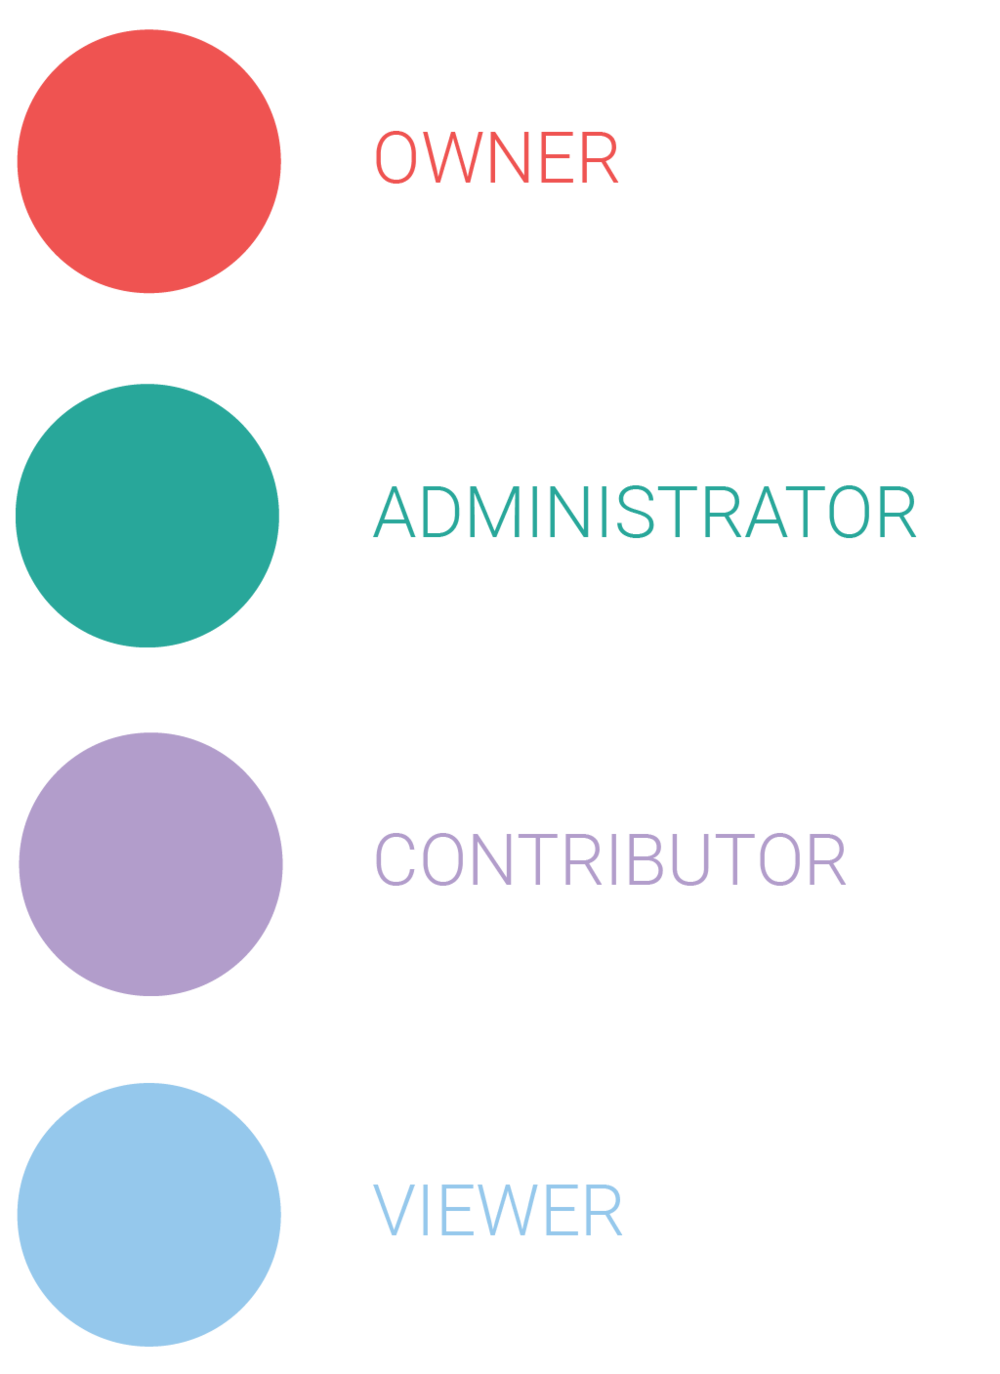 Organisation Level - When you join an organisation you will be given an organisation role. This will determine your access level to the organsation.This does not determine your access levels to projects.